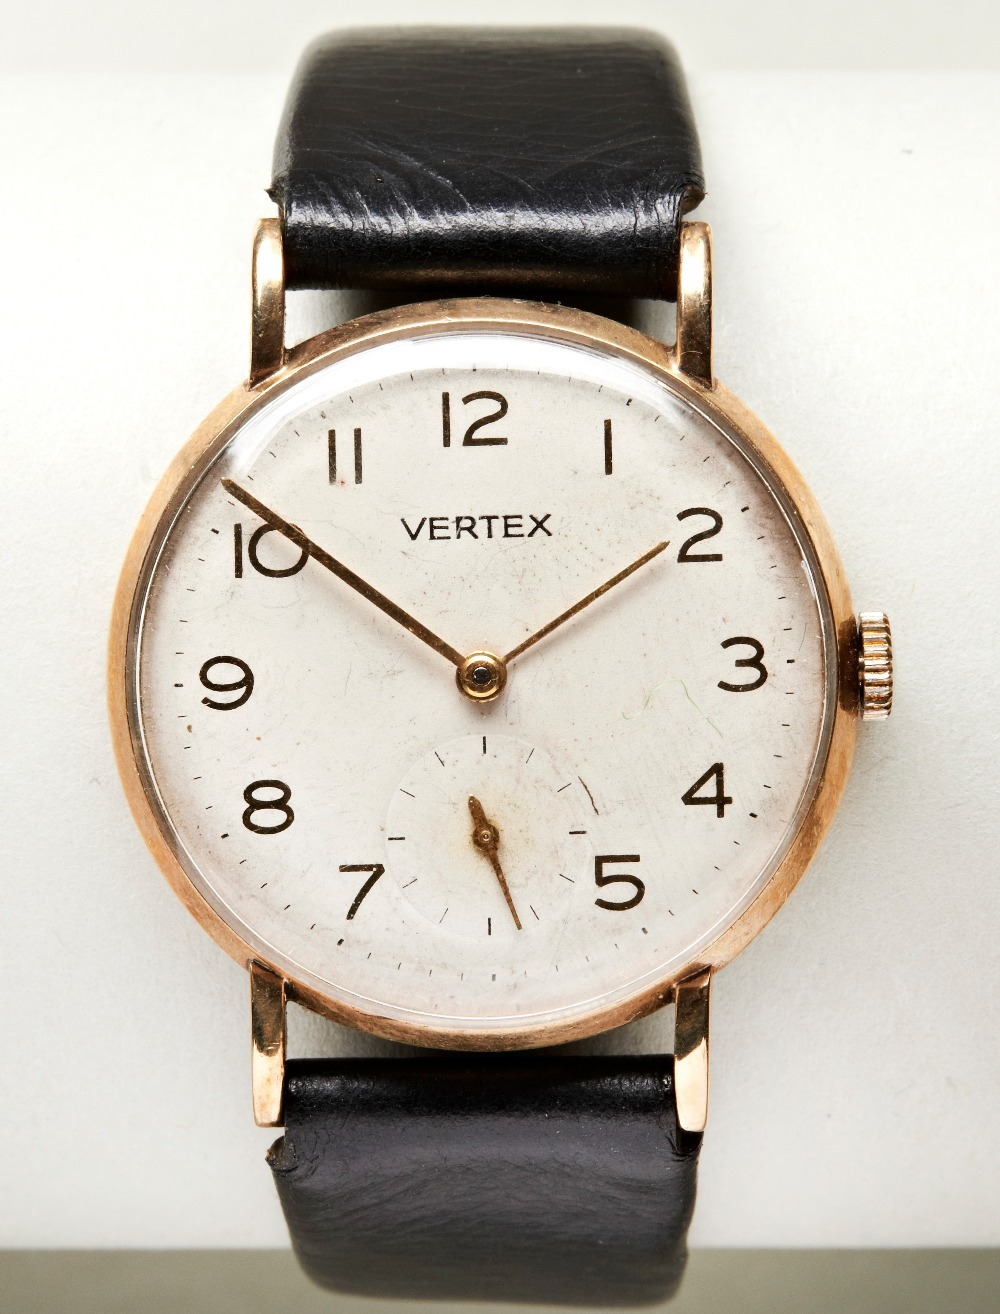 VERTEX 9CT MAN'S DRESS WATCH, c1960, with Arabic numerals and later leather strap. PROVENANCE: The